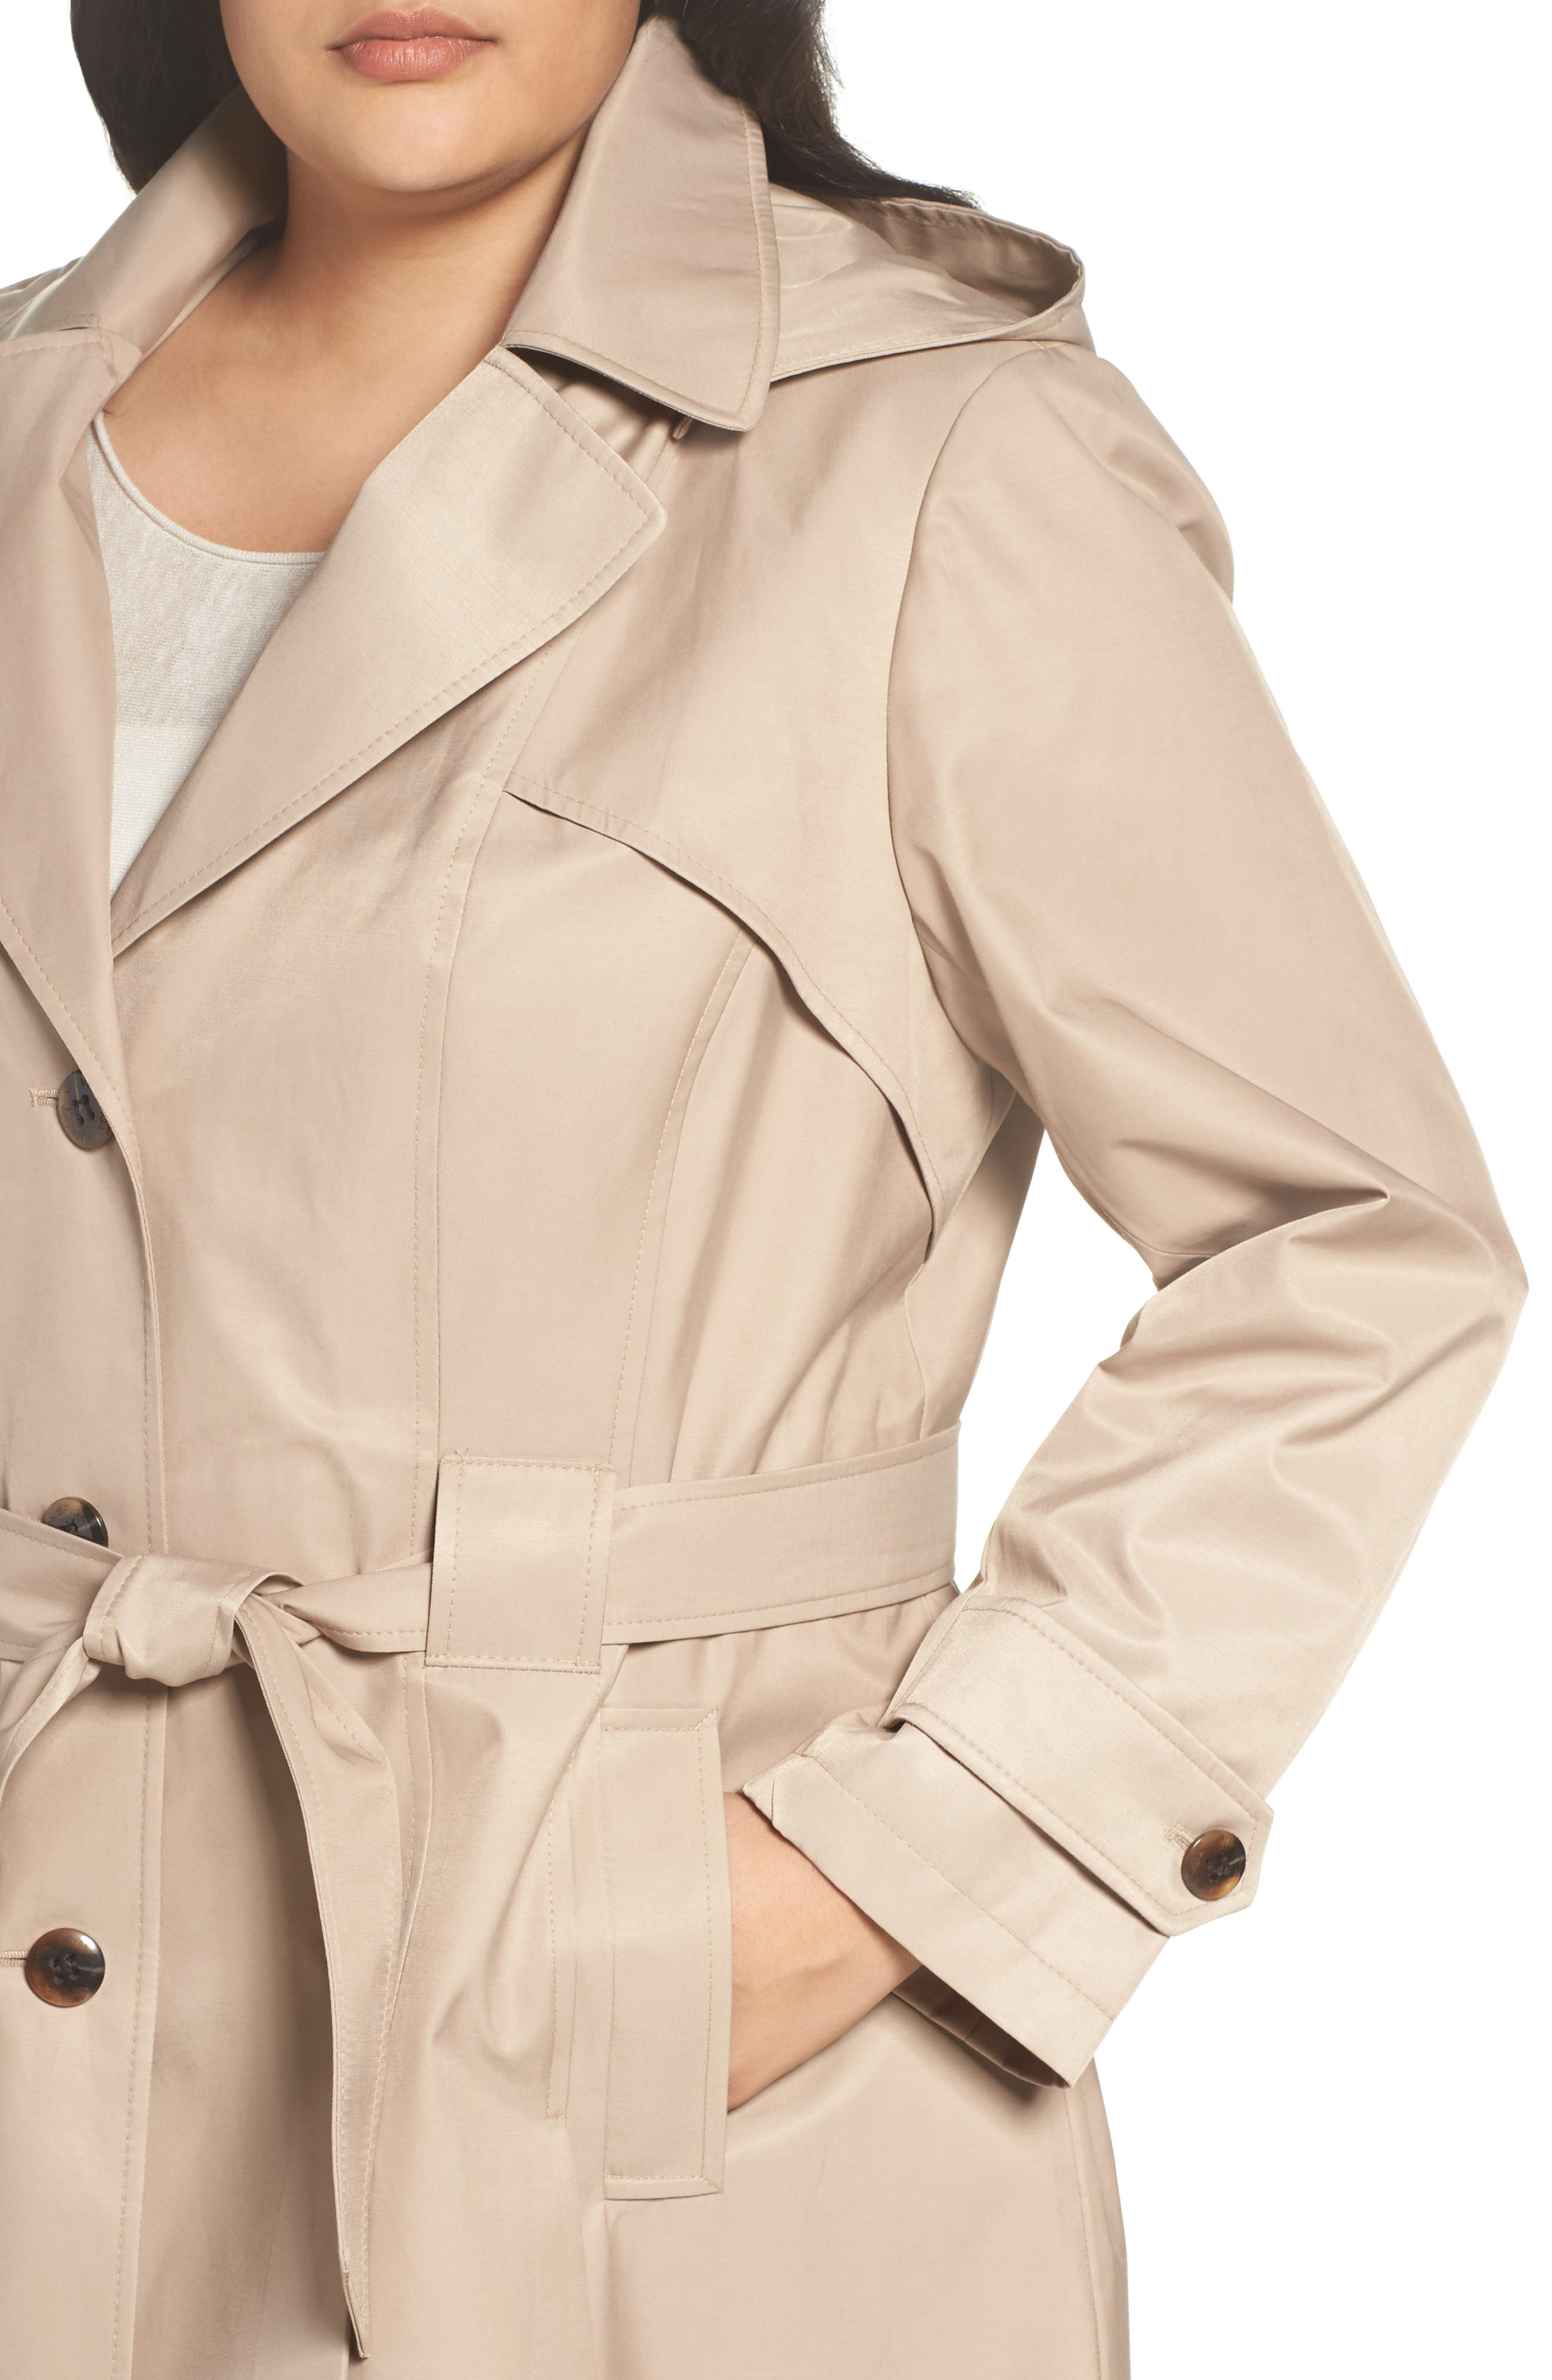 'Scarpa' Single Breasted Trench Coat,                             Alternate thumbnail 4, color,                             New Sand